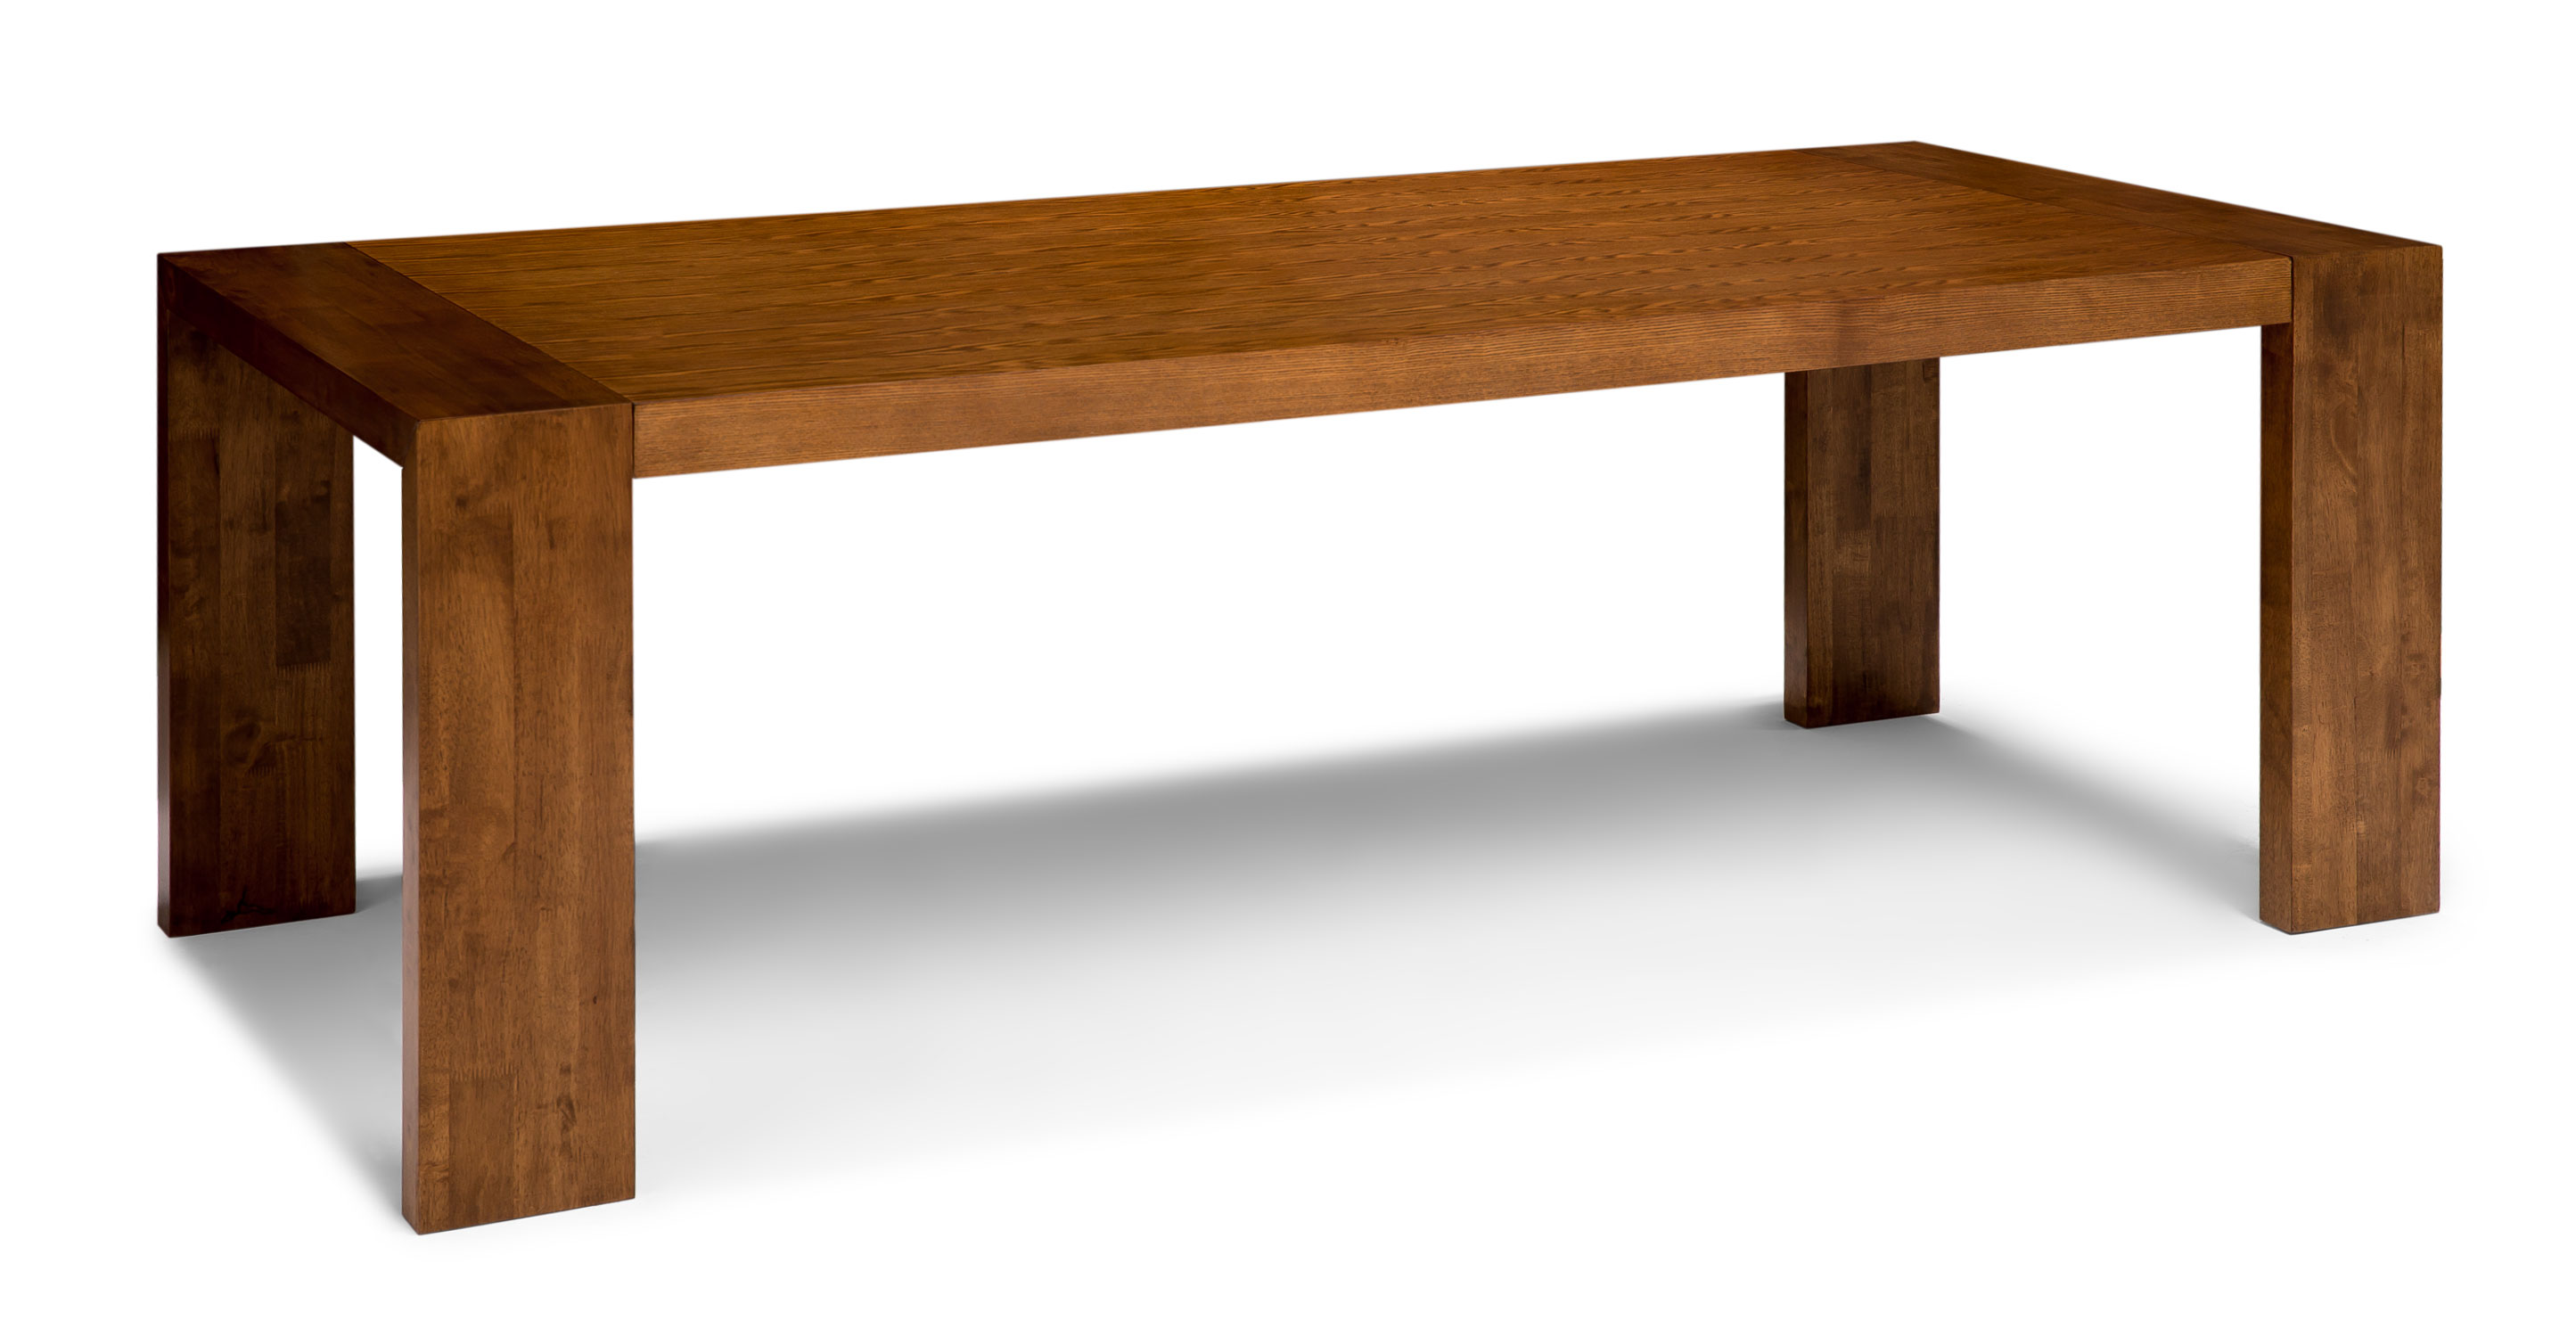 Clarkson cocoa wood dining table dining tables article for Hardwood dining table